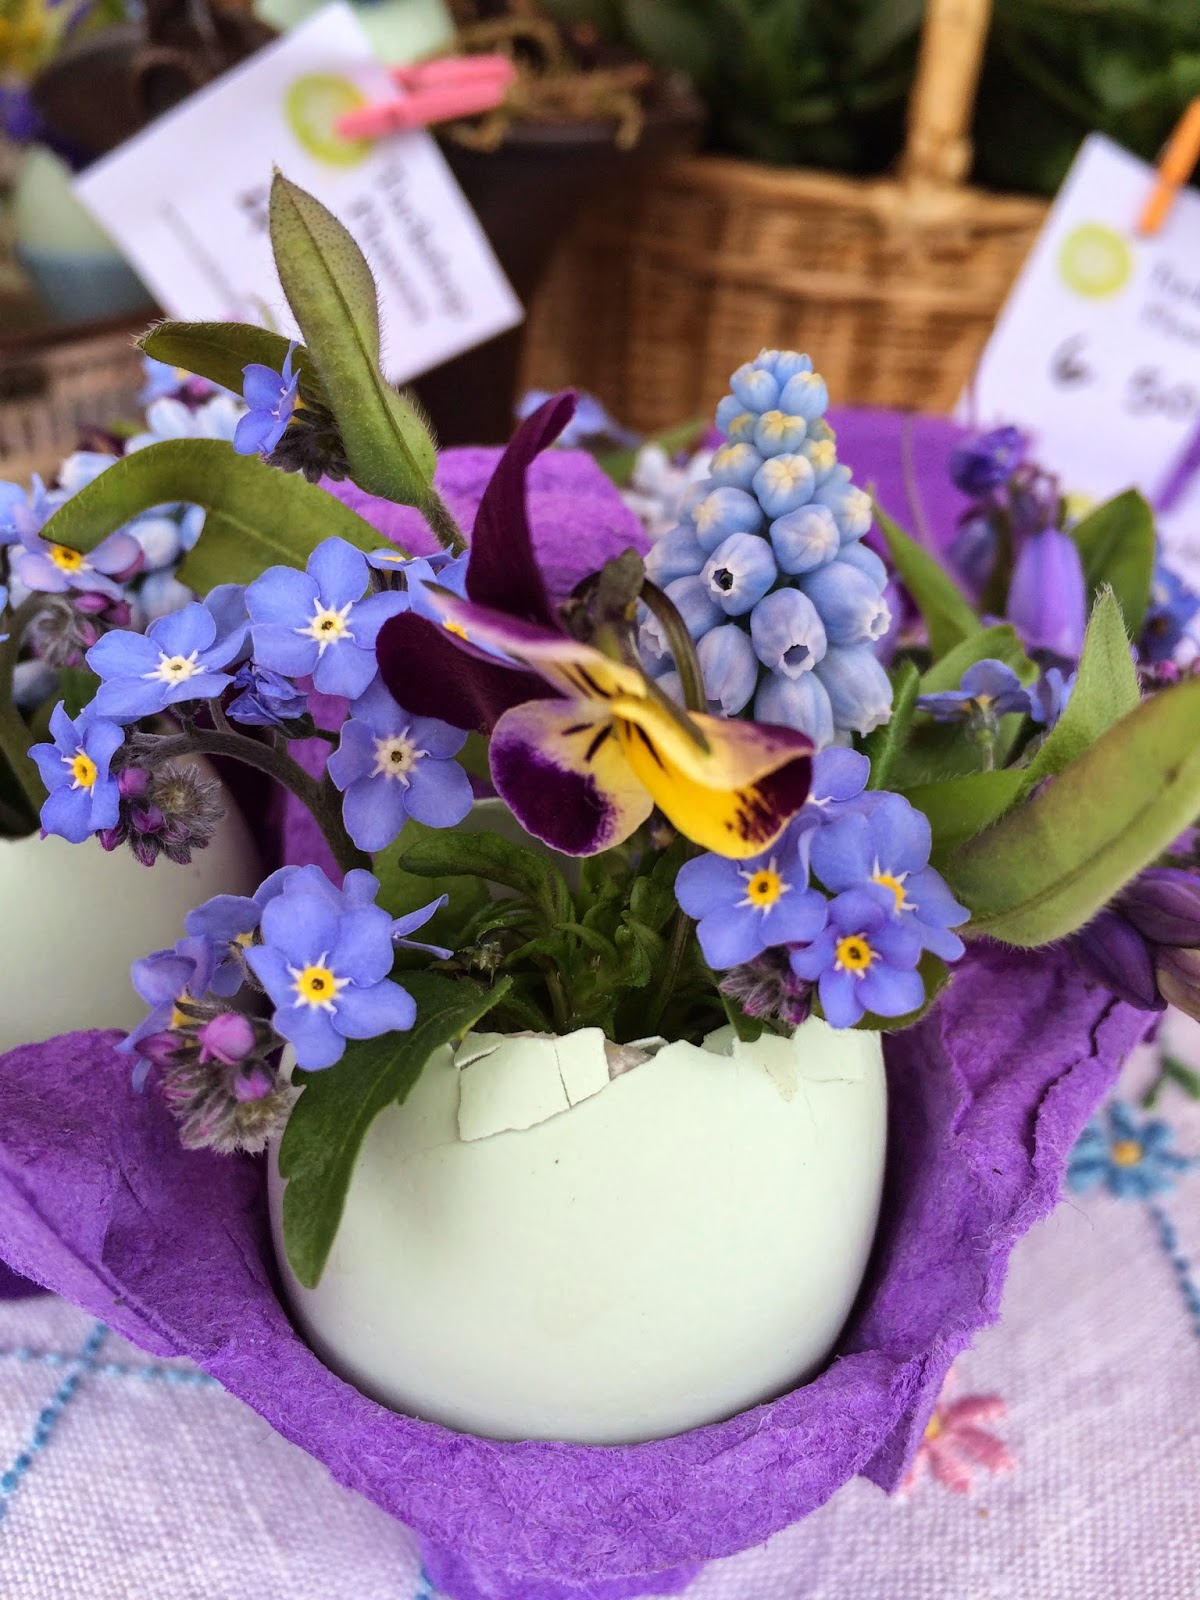 Cotswold legbarr blue shelled egg with forgetmenots, viola and grape hyacinths.